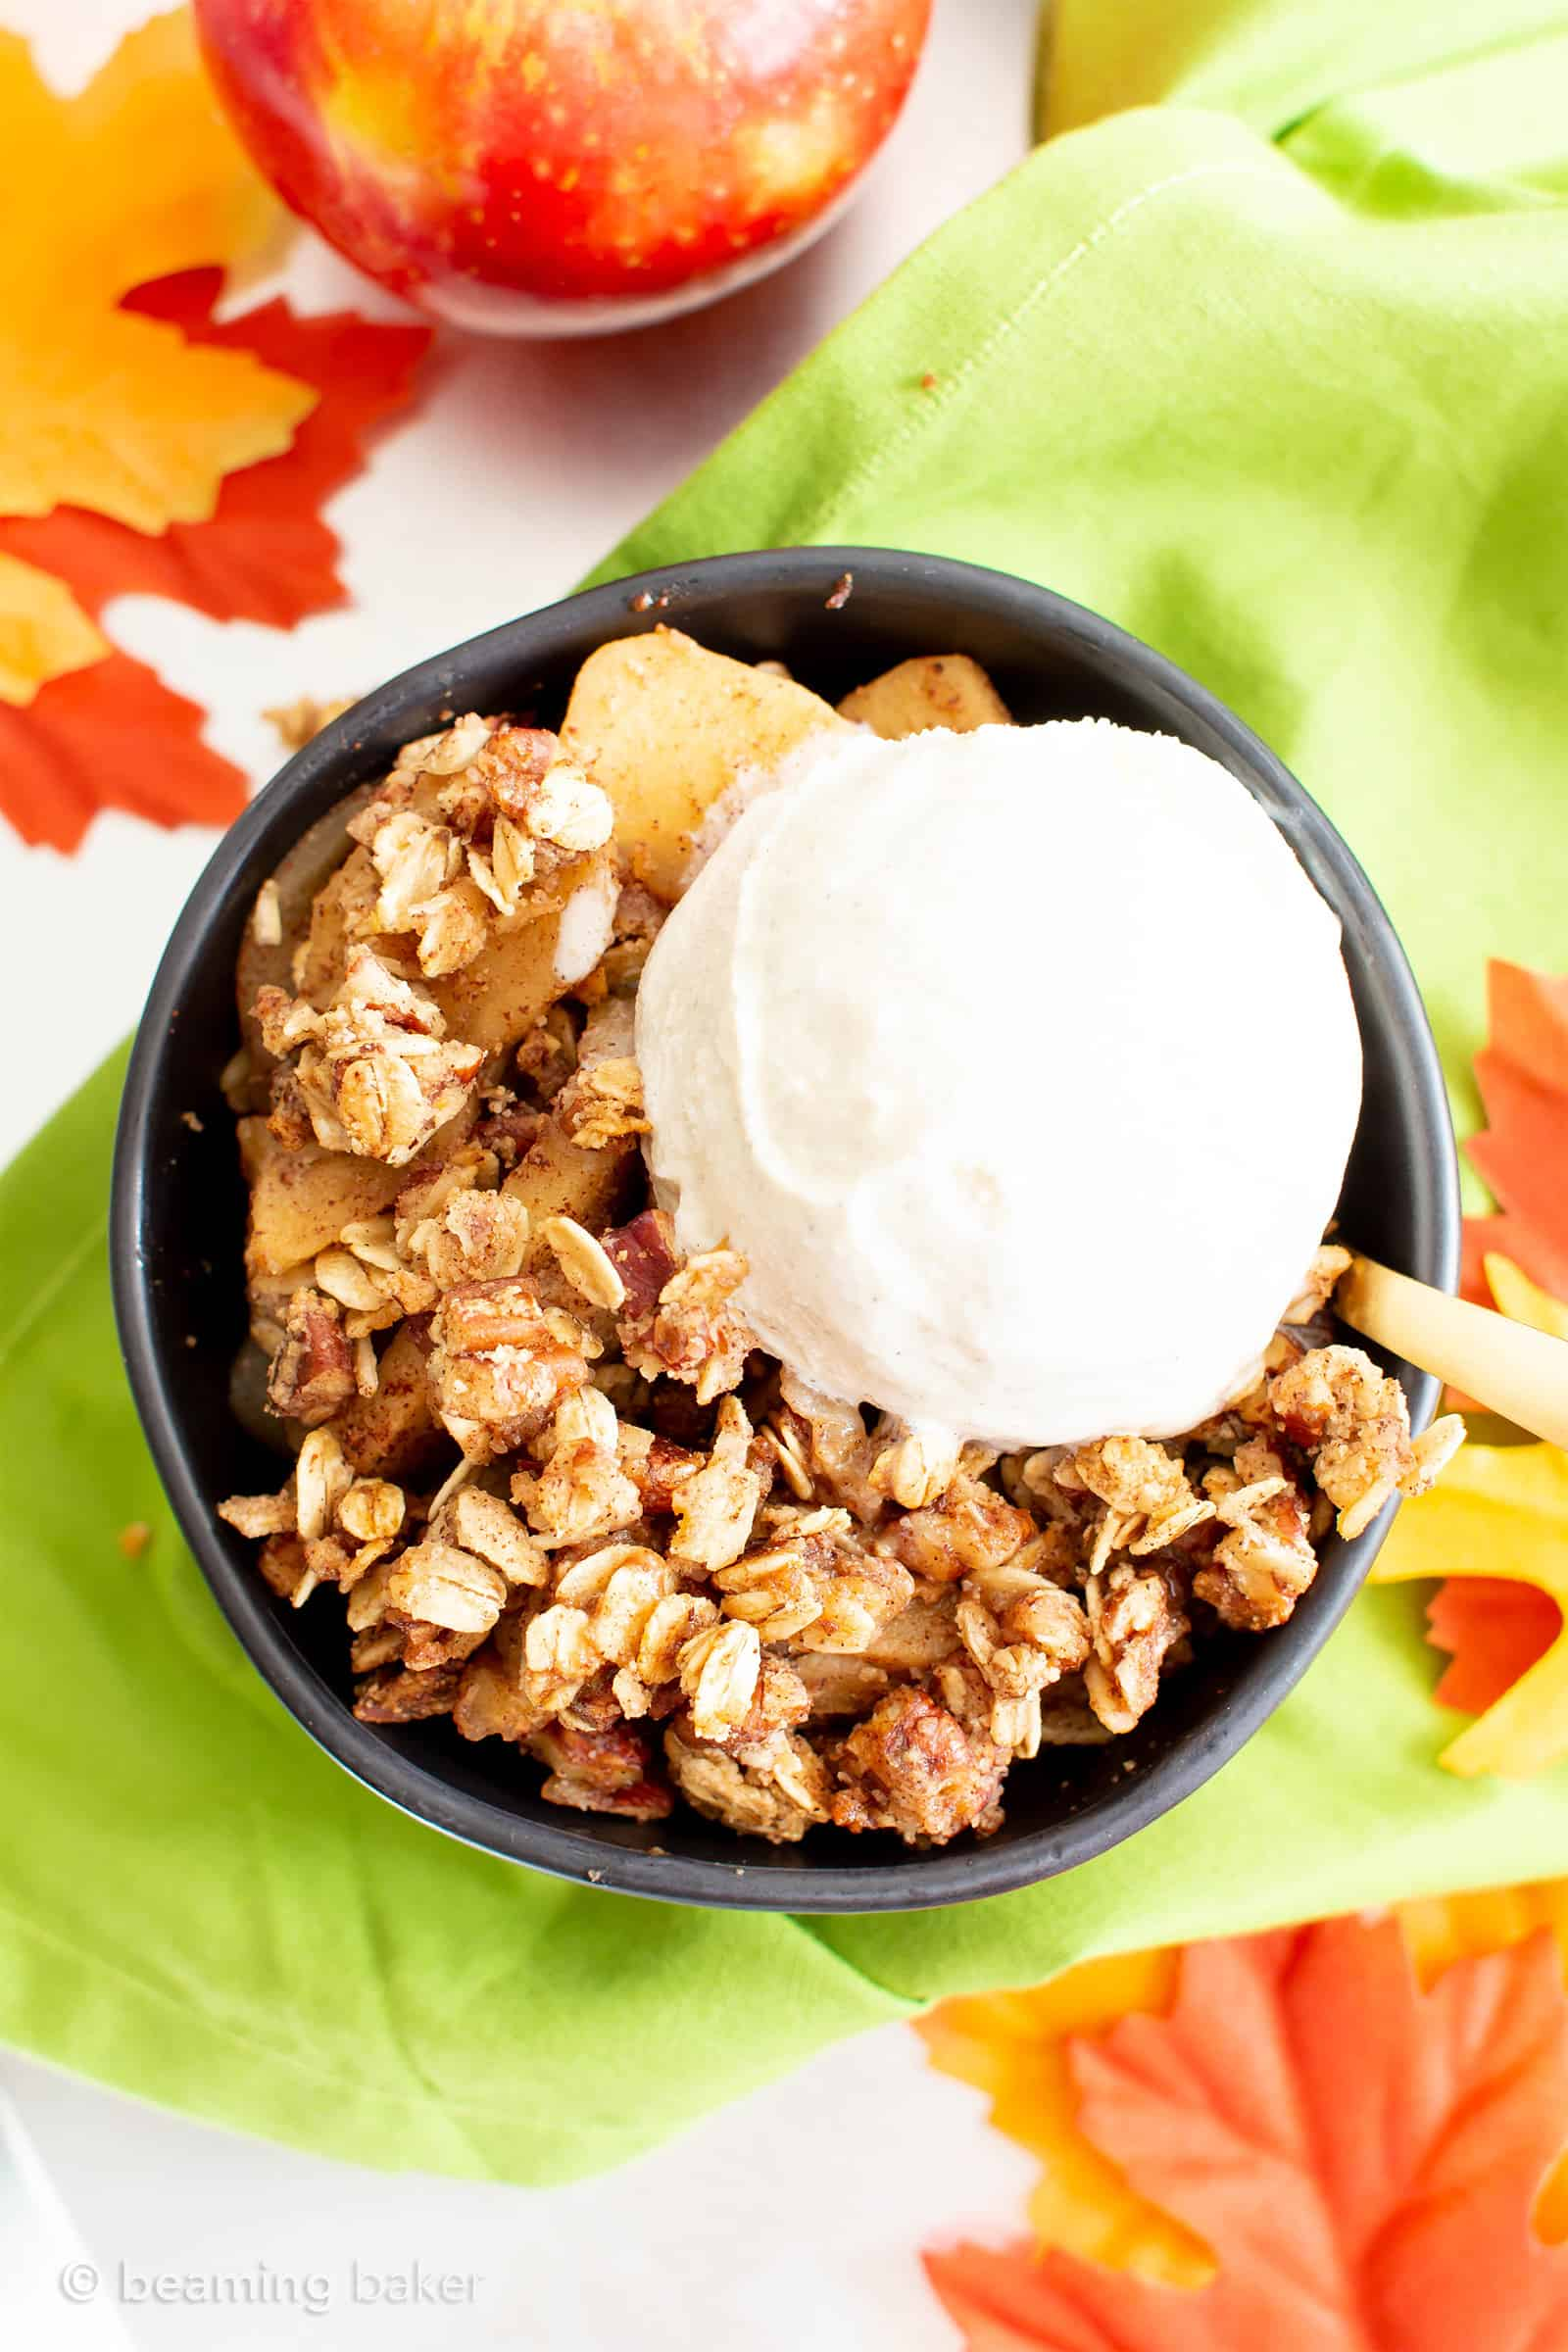 Vegan Gluten Free Cinnamon Apple Crisp with Oats (V, GF): an easy recipe for a warm, gooey apple crisp with delicious cinnamon oat topping. Made with healthy ingredients. #Vegan #GlutenFree #GlutenFreeVegan #AppleCrisp #HealthyDesserts #Fall | Recipe at BeamingBaker.com